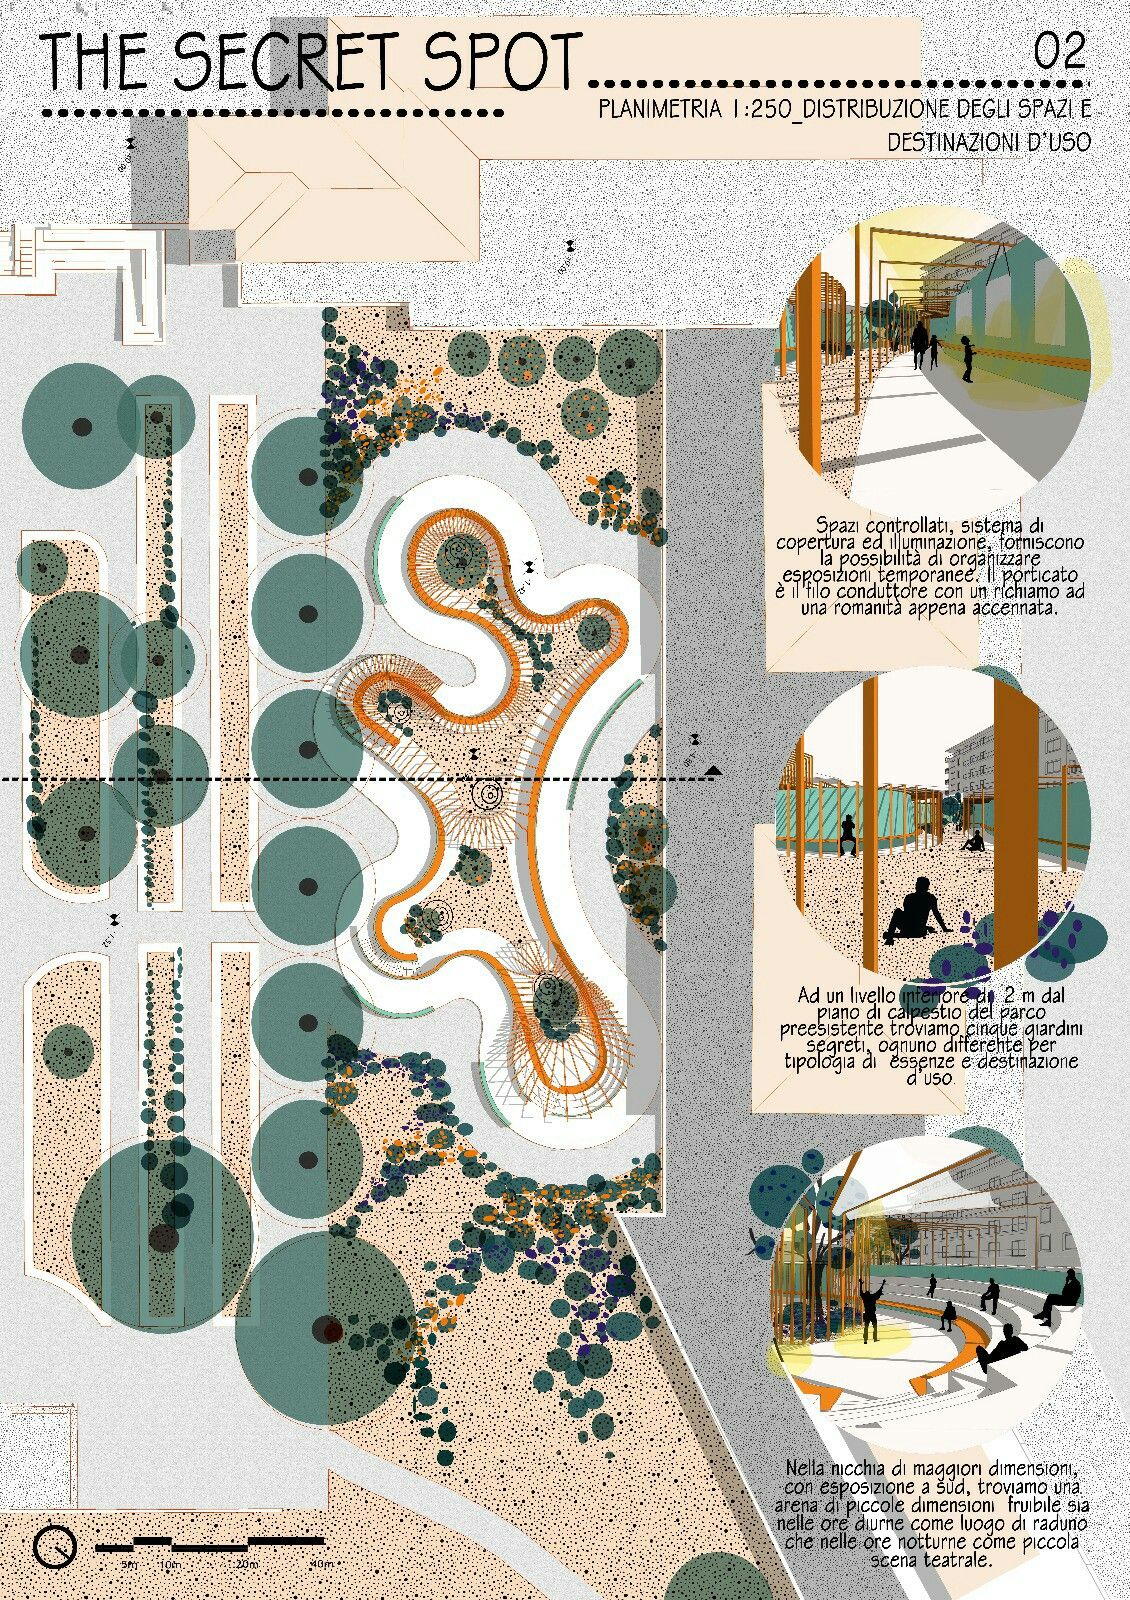 Landscape Architecture Garden Design Public Square Competition For A In The Main Of Pomezia Italy